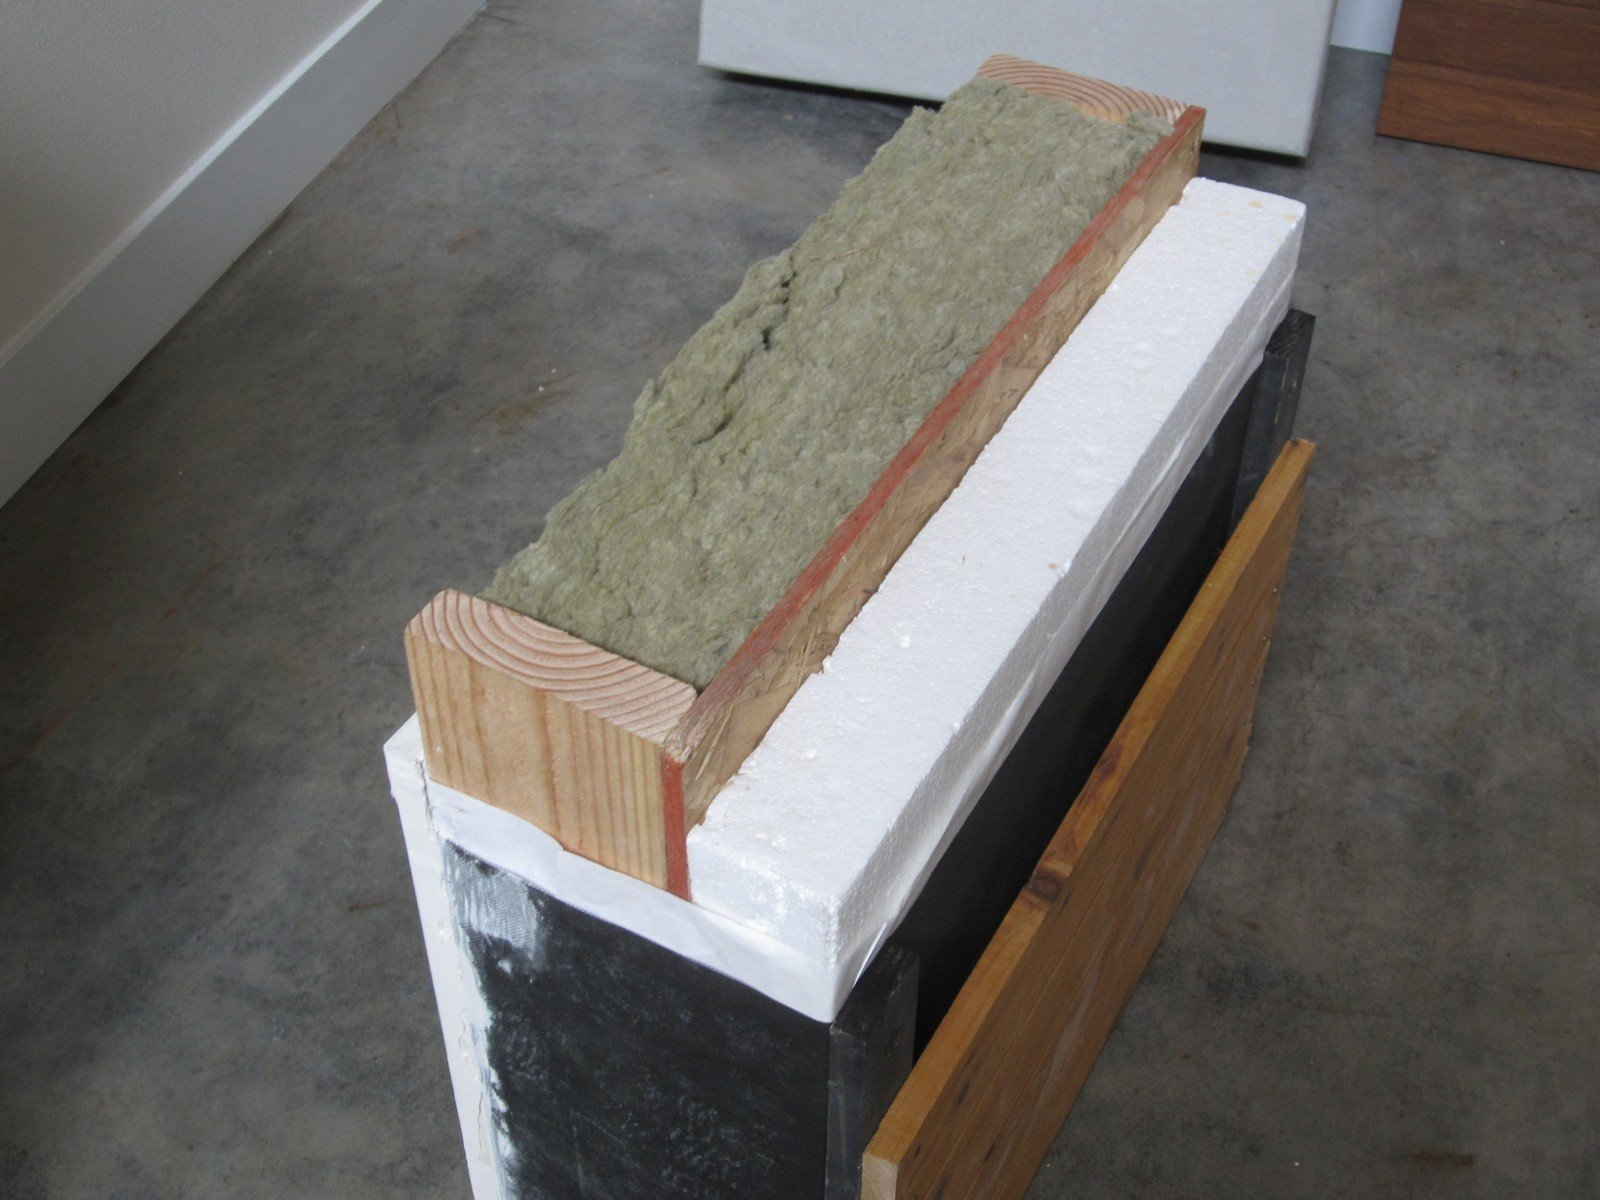 Our R-38 wall section. Rockwool insulation is placed in the 2x6 cavity, and 3.5 inches of continuous expanded polystyrene insulation is screwed to the outside of the oriented strand board shear wall. A benefit to this exterior insulation is that the thermally conductive bridge of the wood studs is broken by insulation. Even a thin layer of exterior insulation can make a big difference.  Photo 3 of 9 in A Zero-Energy Community: Part 2